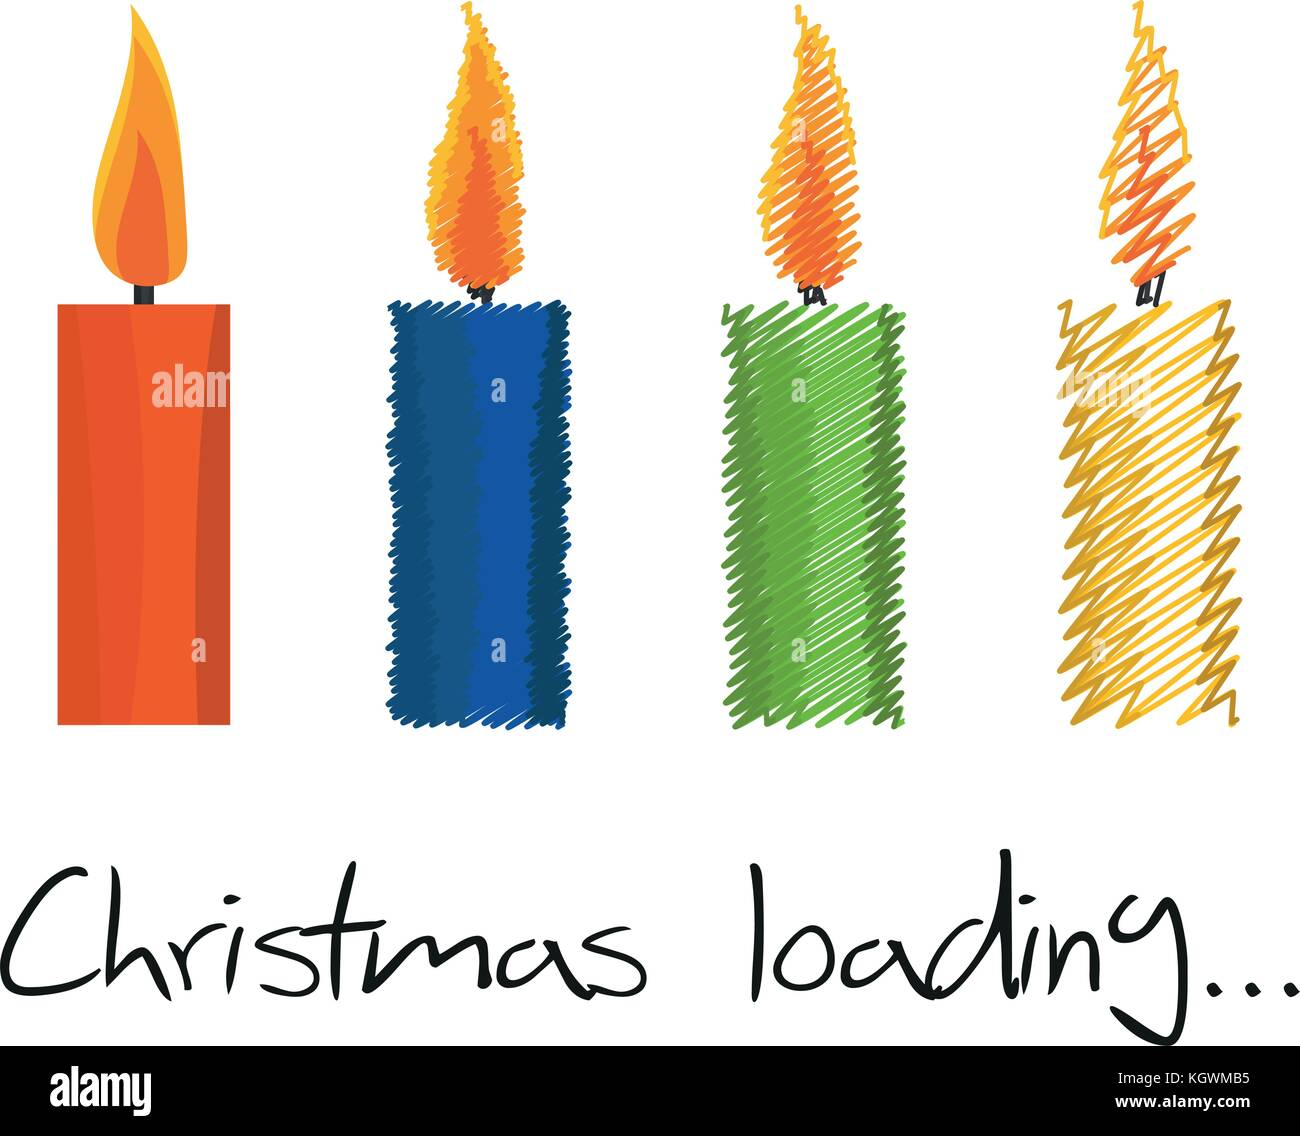 Illustration Christmas Loading Candle for the creative use in graphic design - Stock Vector